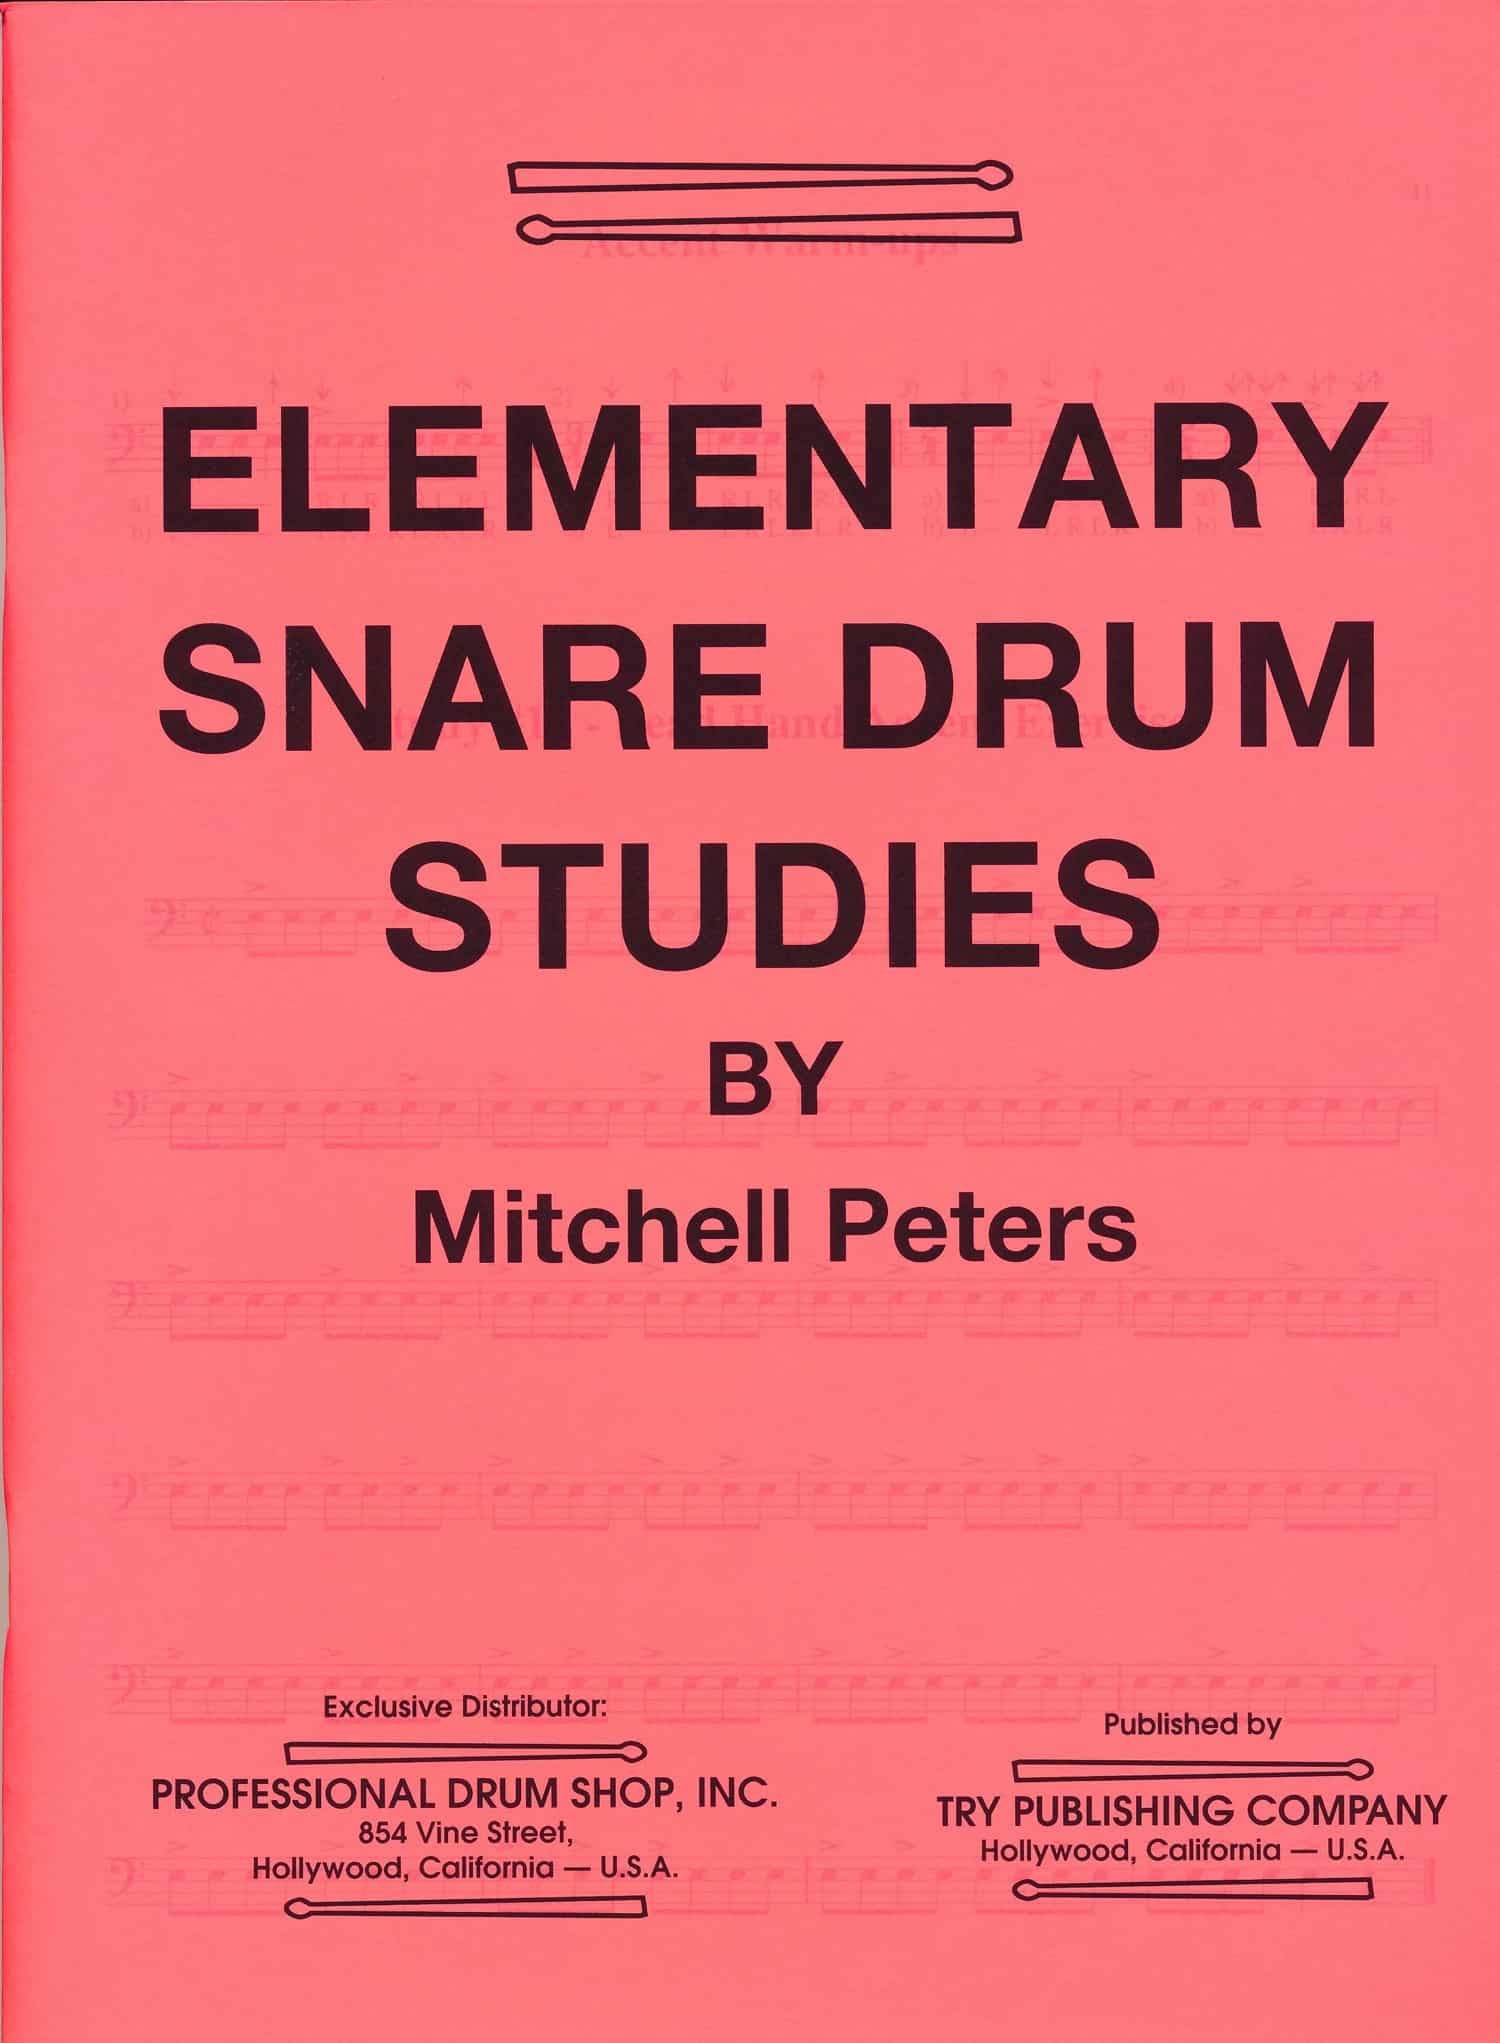 Elementary Snare Drum Studies by Mitchell Peters